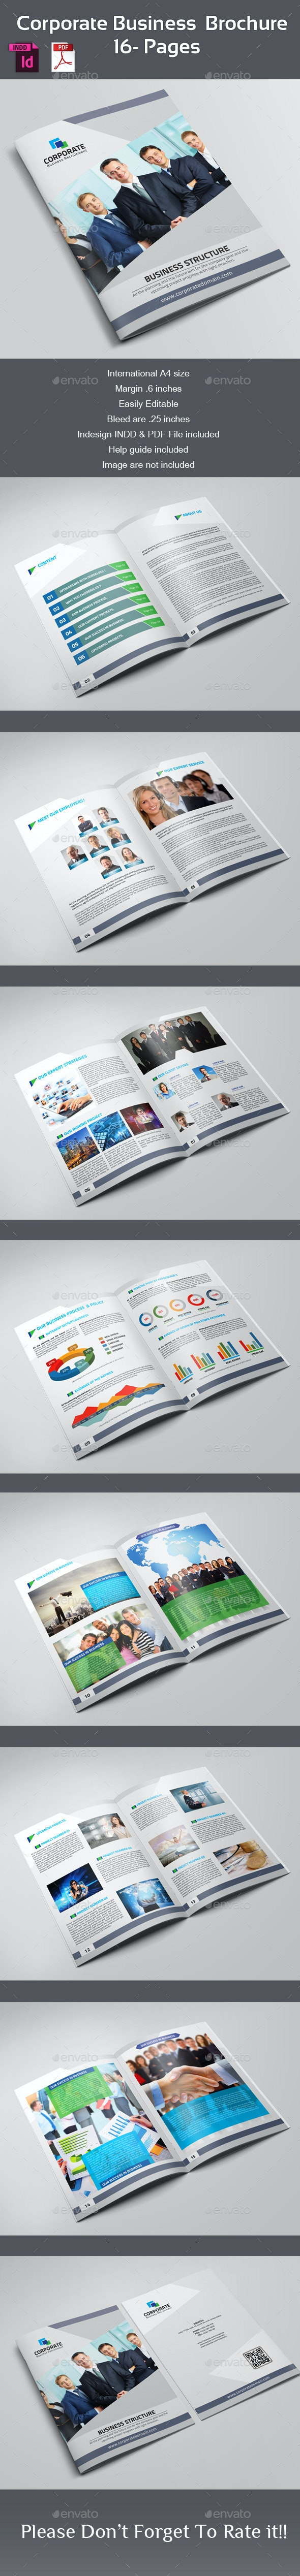 Corporate Business Brochure - 16 pages - Corporate Brochures